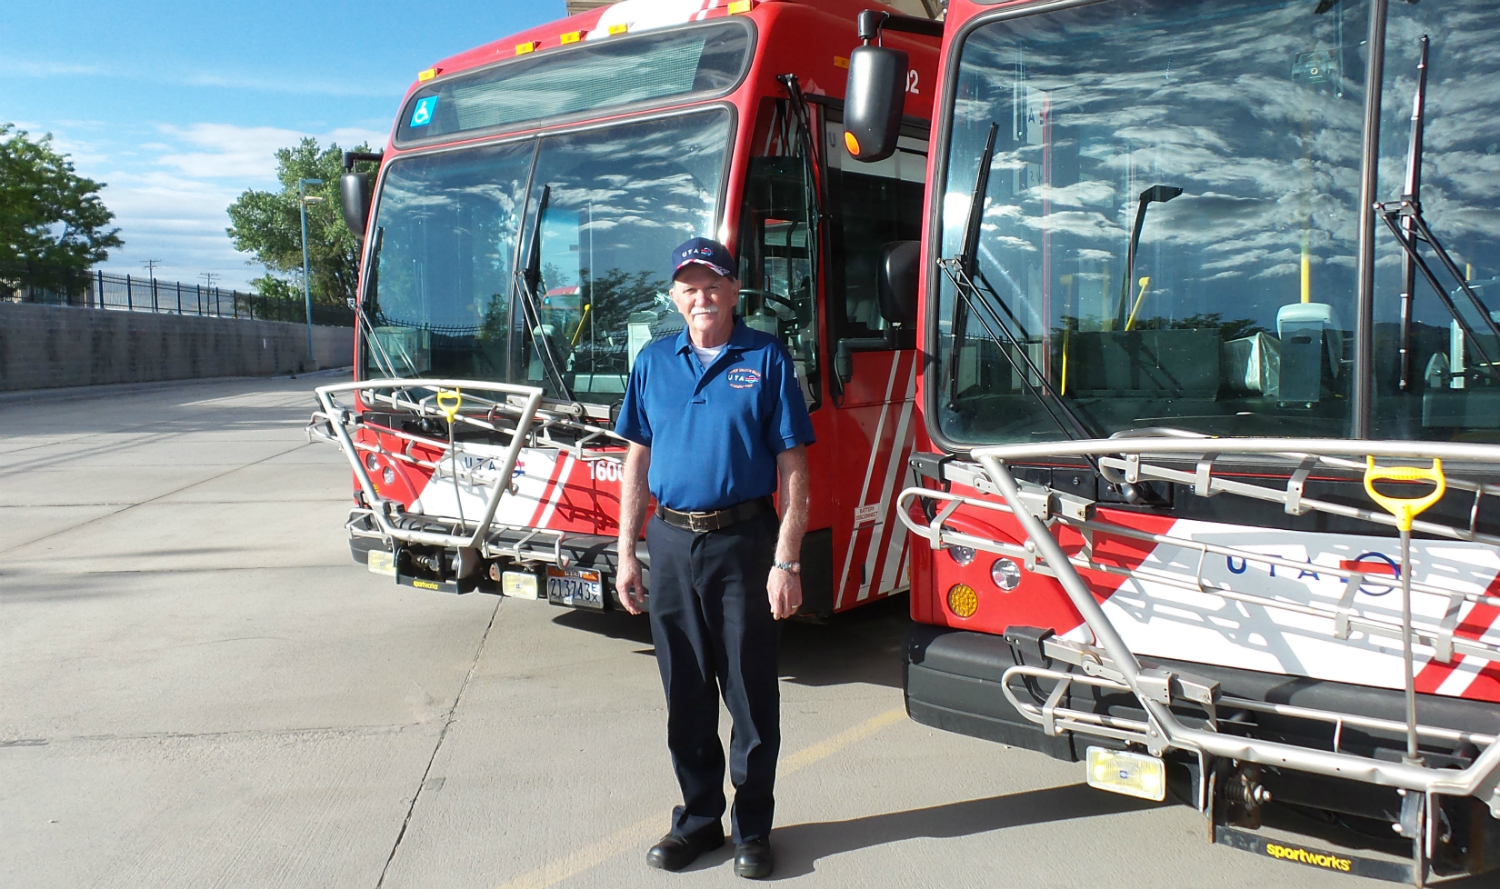 UTA Bus Operator Tests Skills in International Competition